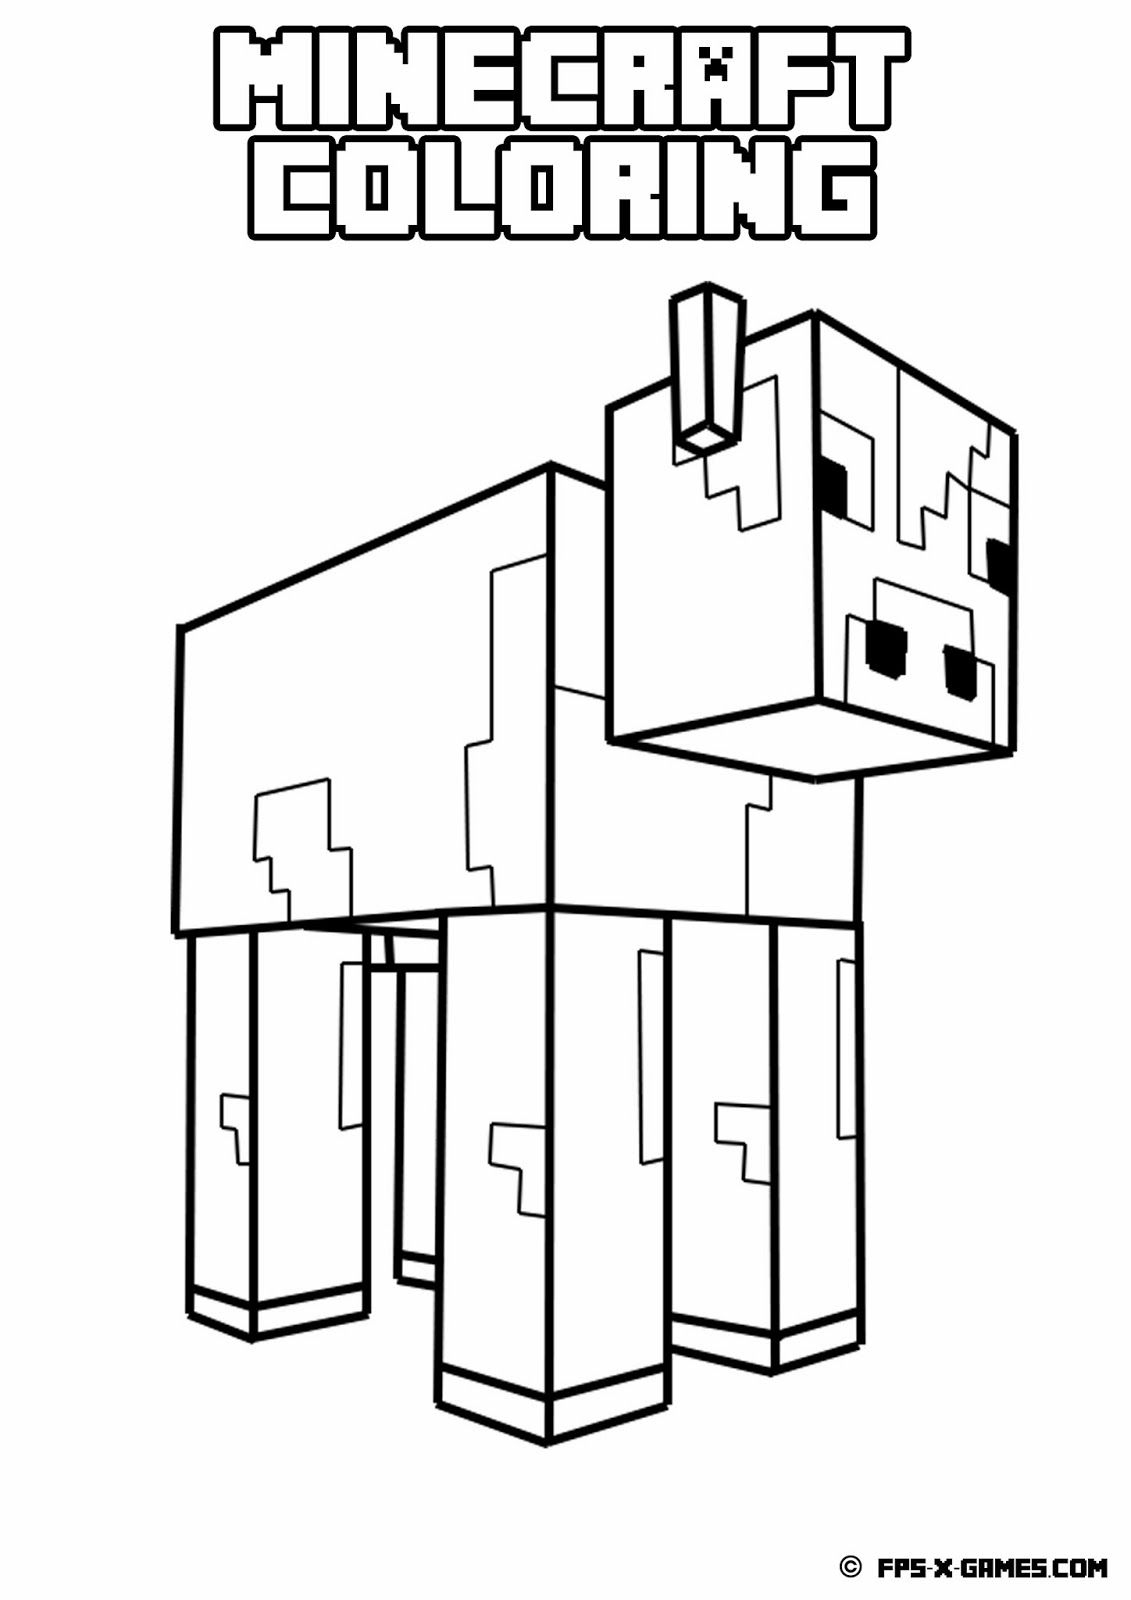 Printable Minecraft Coloring Page | Minecraft Coloring | Pinterest - Free Printable Minecraft Activity Pages